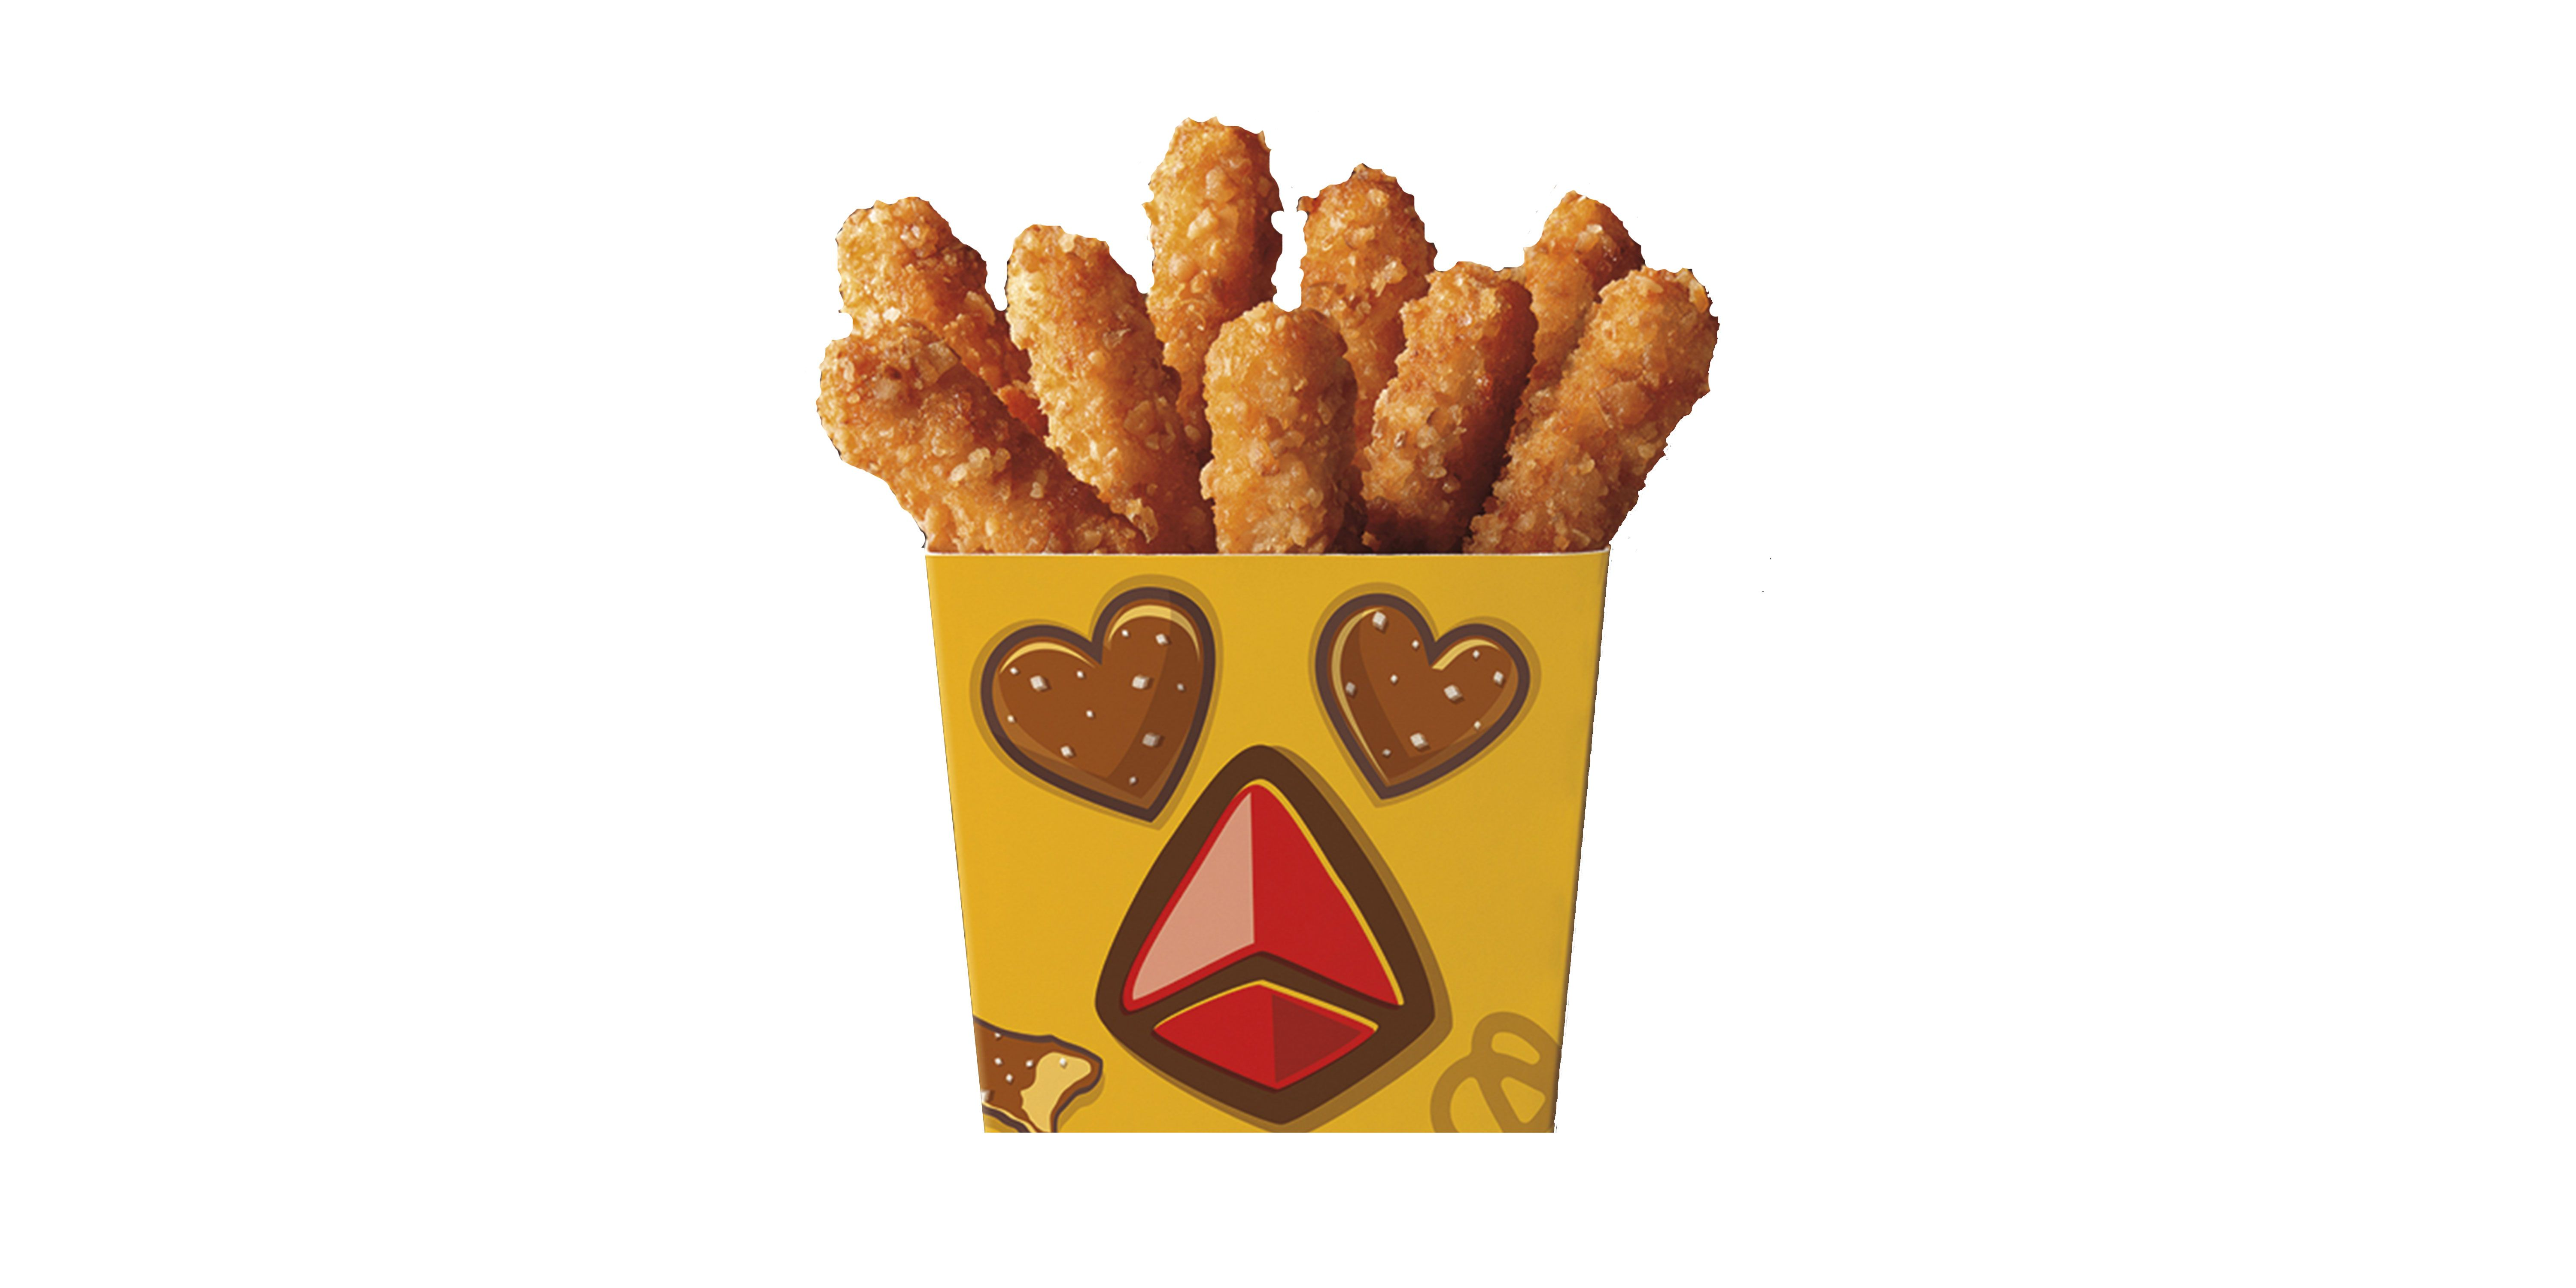 Pretzel Chicken Fries Are Coming To Burger King, And They Look INSANE